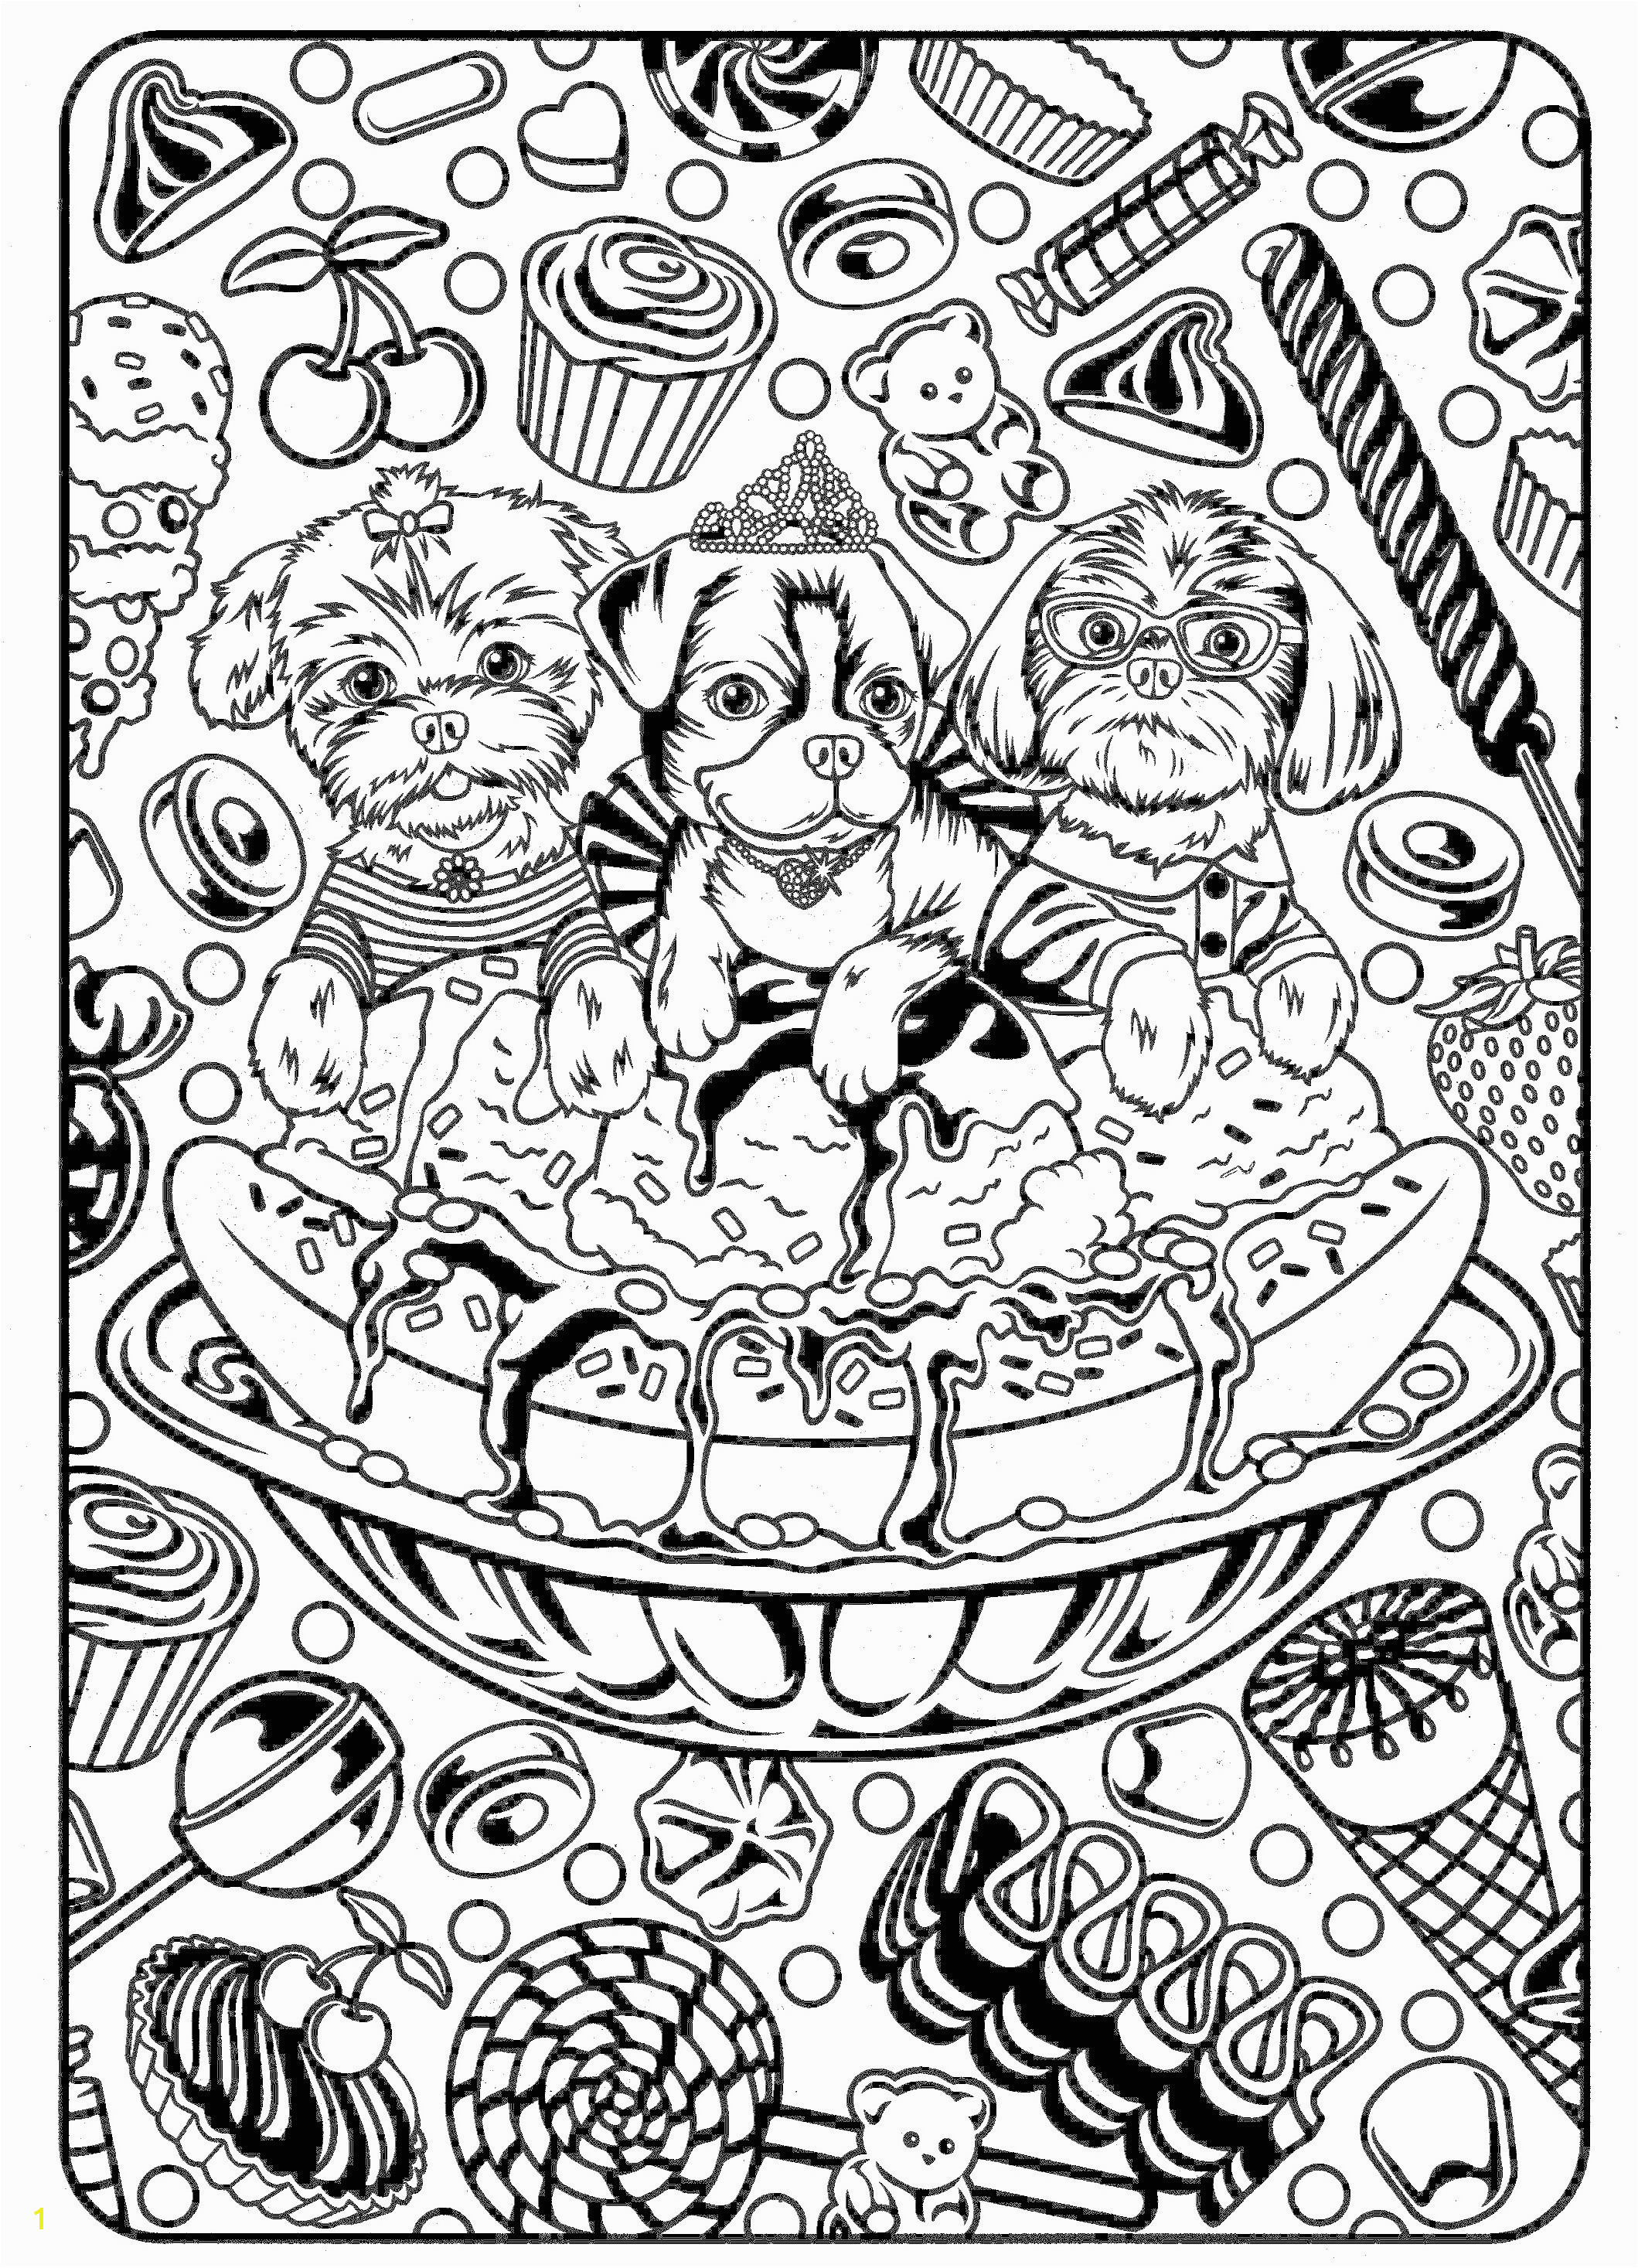 Easy to Draw Jesus Free Coloring Pages Elegant Crayola Pages 0d Archives Se Telefonyfo